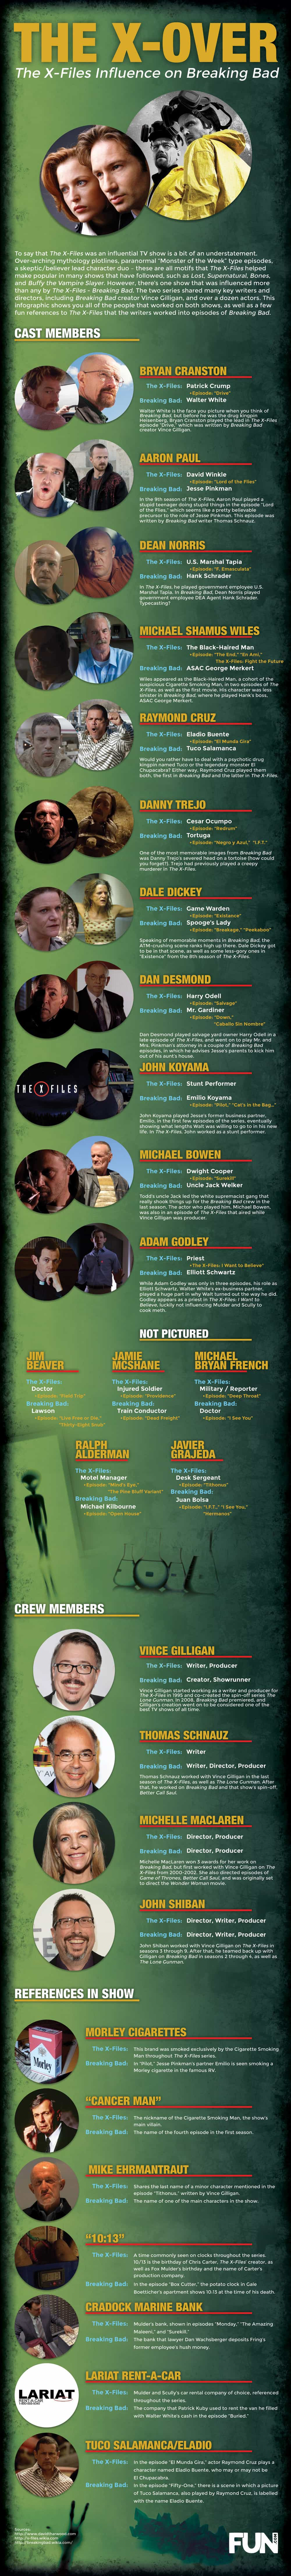 X-Files-Breaking-Bad-Connection-Infographic